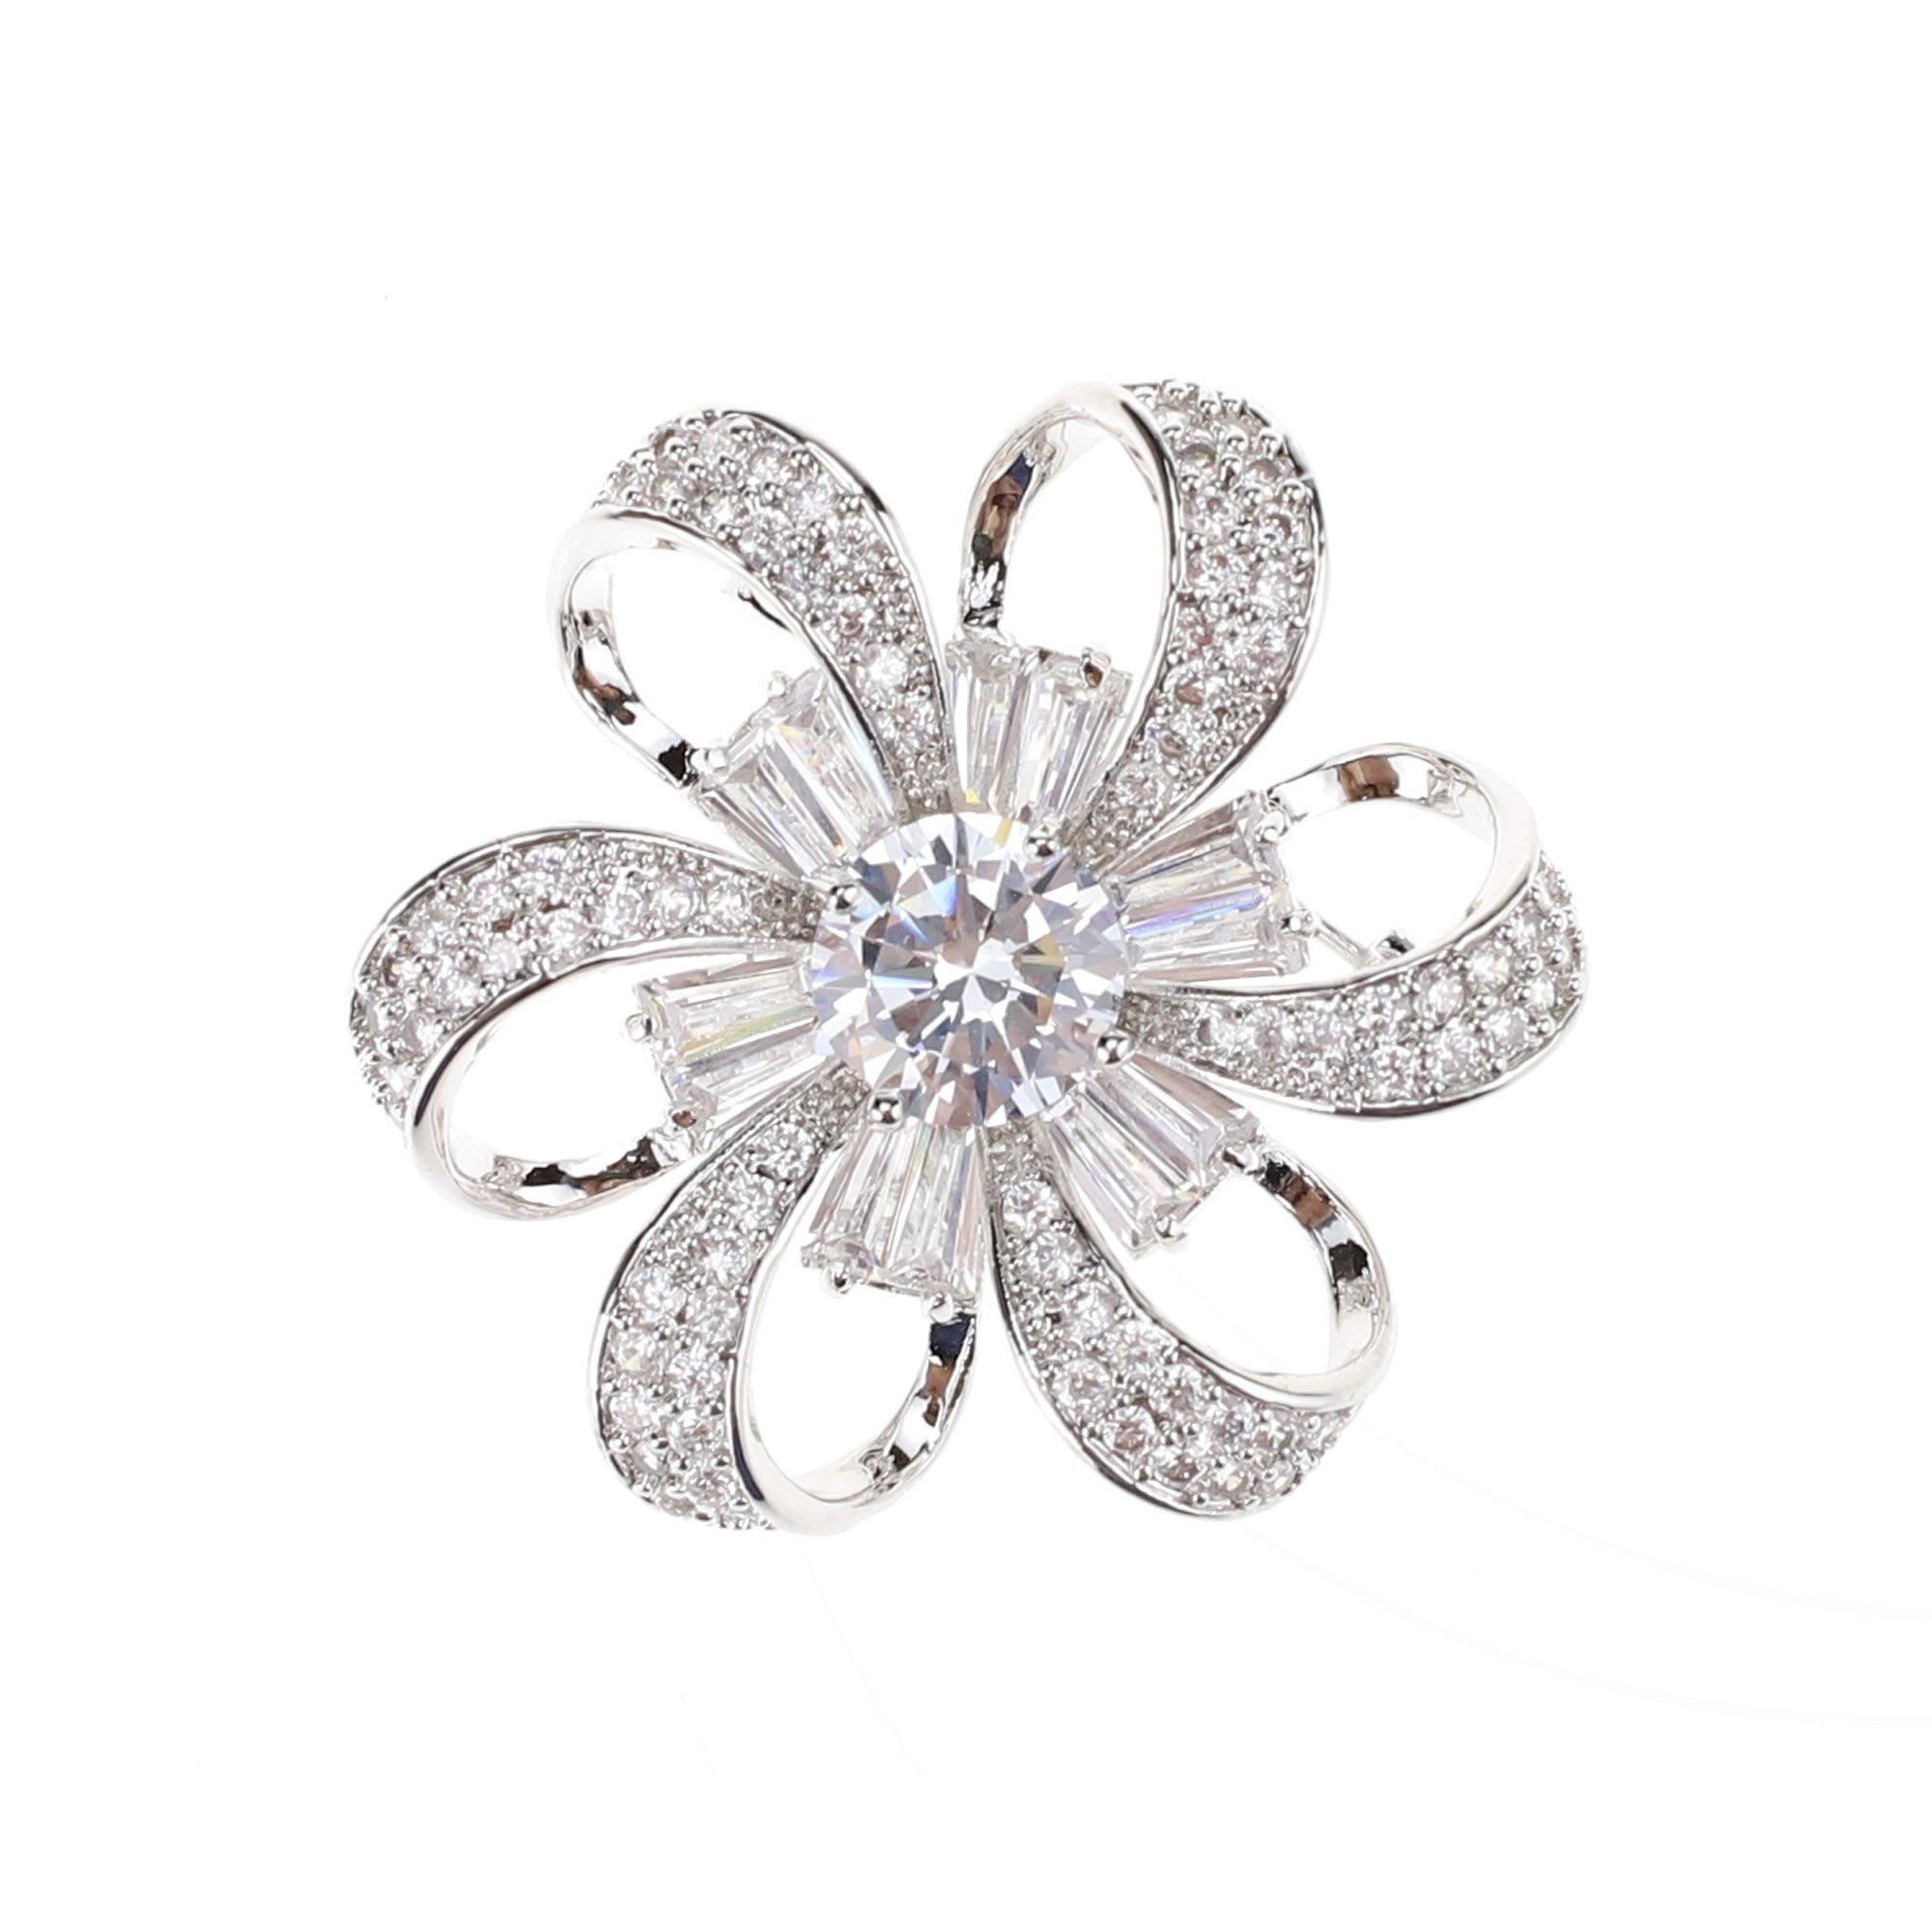 SHINYTIME Women's Zircon Hex Floral Shape Fashion Handmade Brooch Pin with Clear Diamond for Gifts